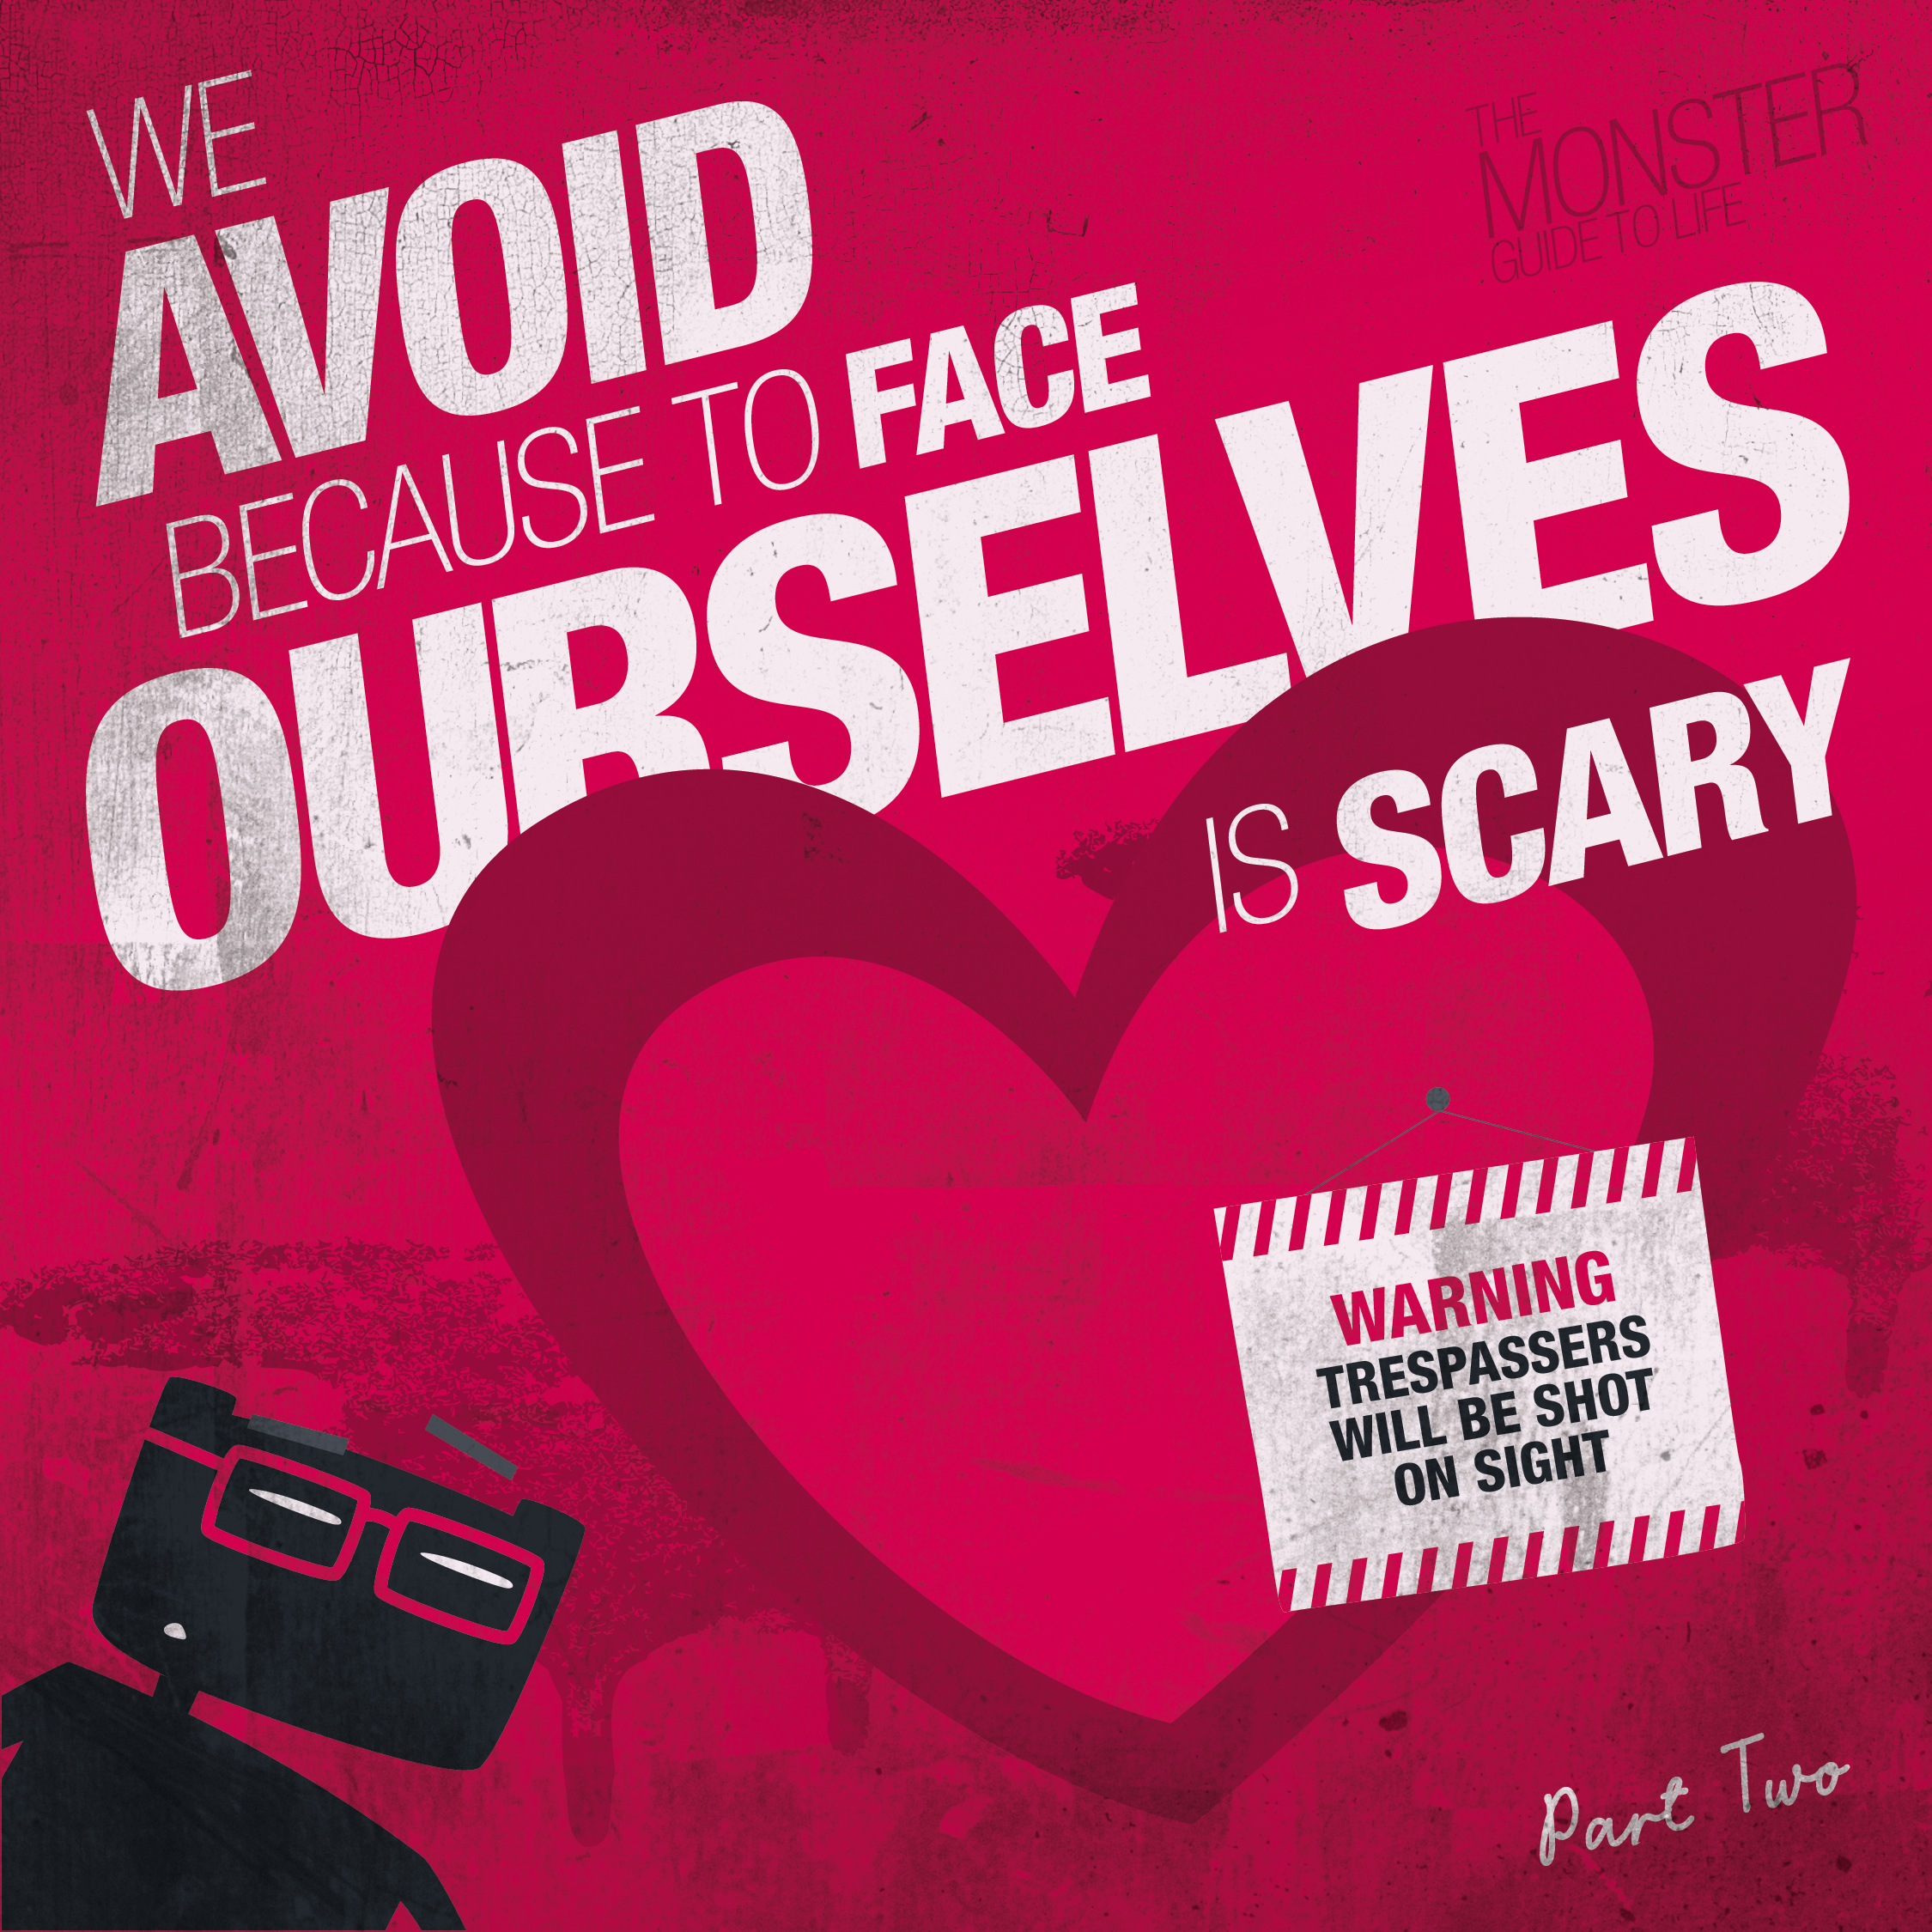 We avoid because to face ourselves is scary